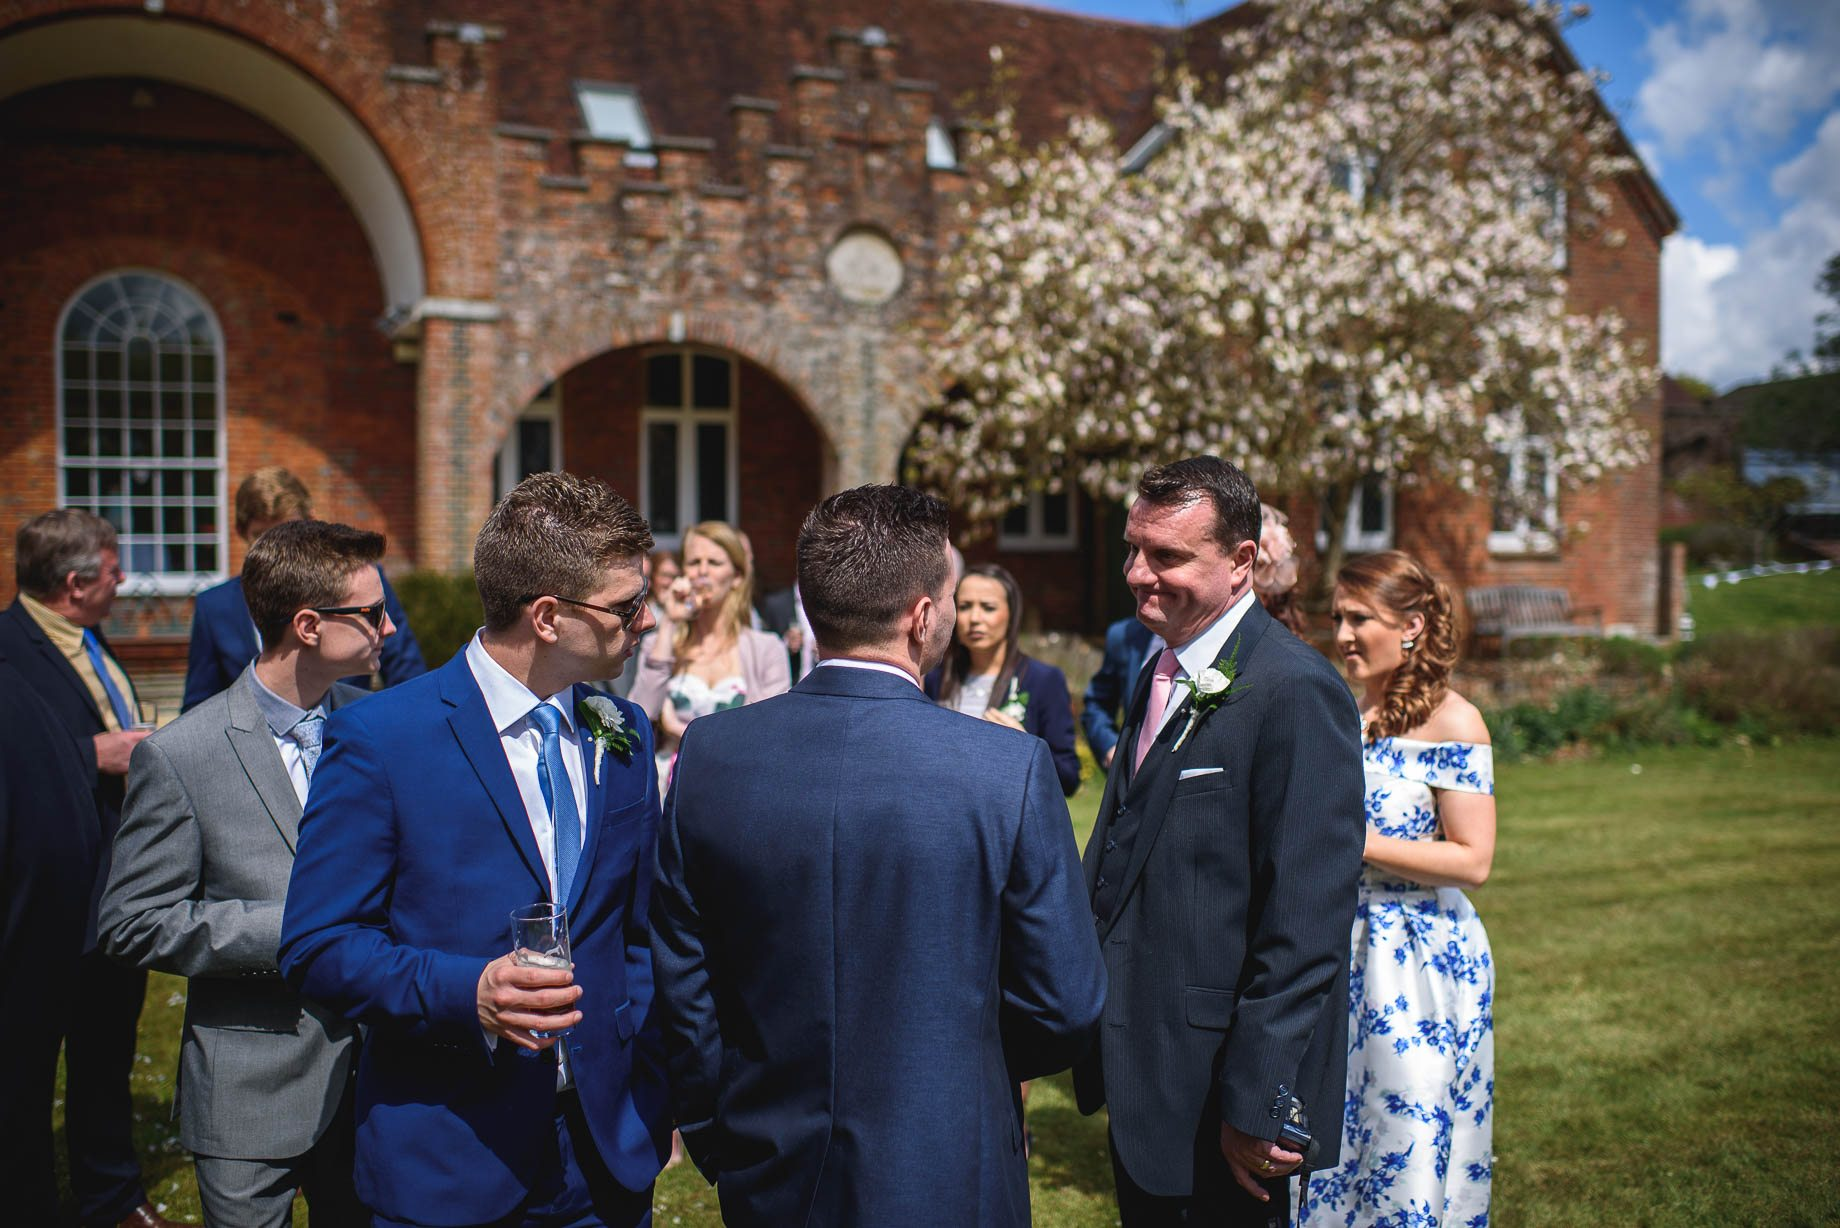 Hampshire wedding photography by Guy Collier - Emily and Tom (71 of 164)